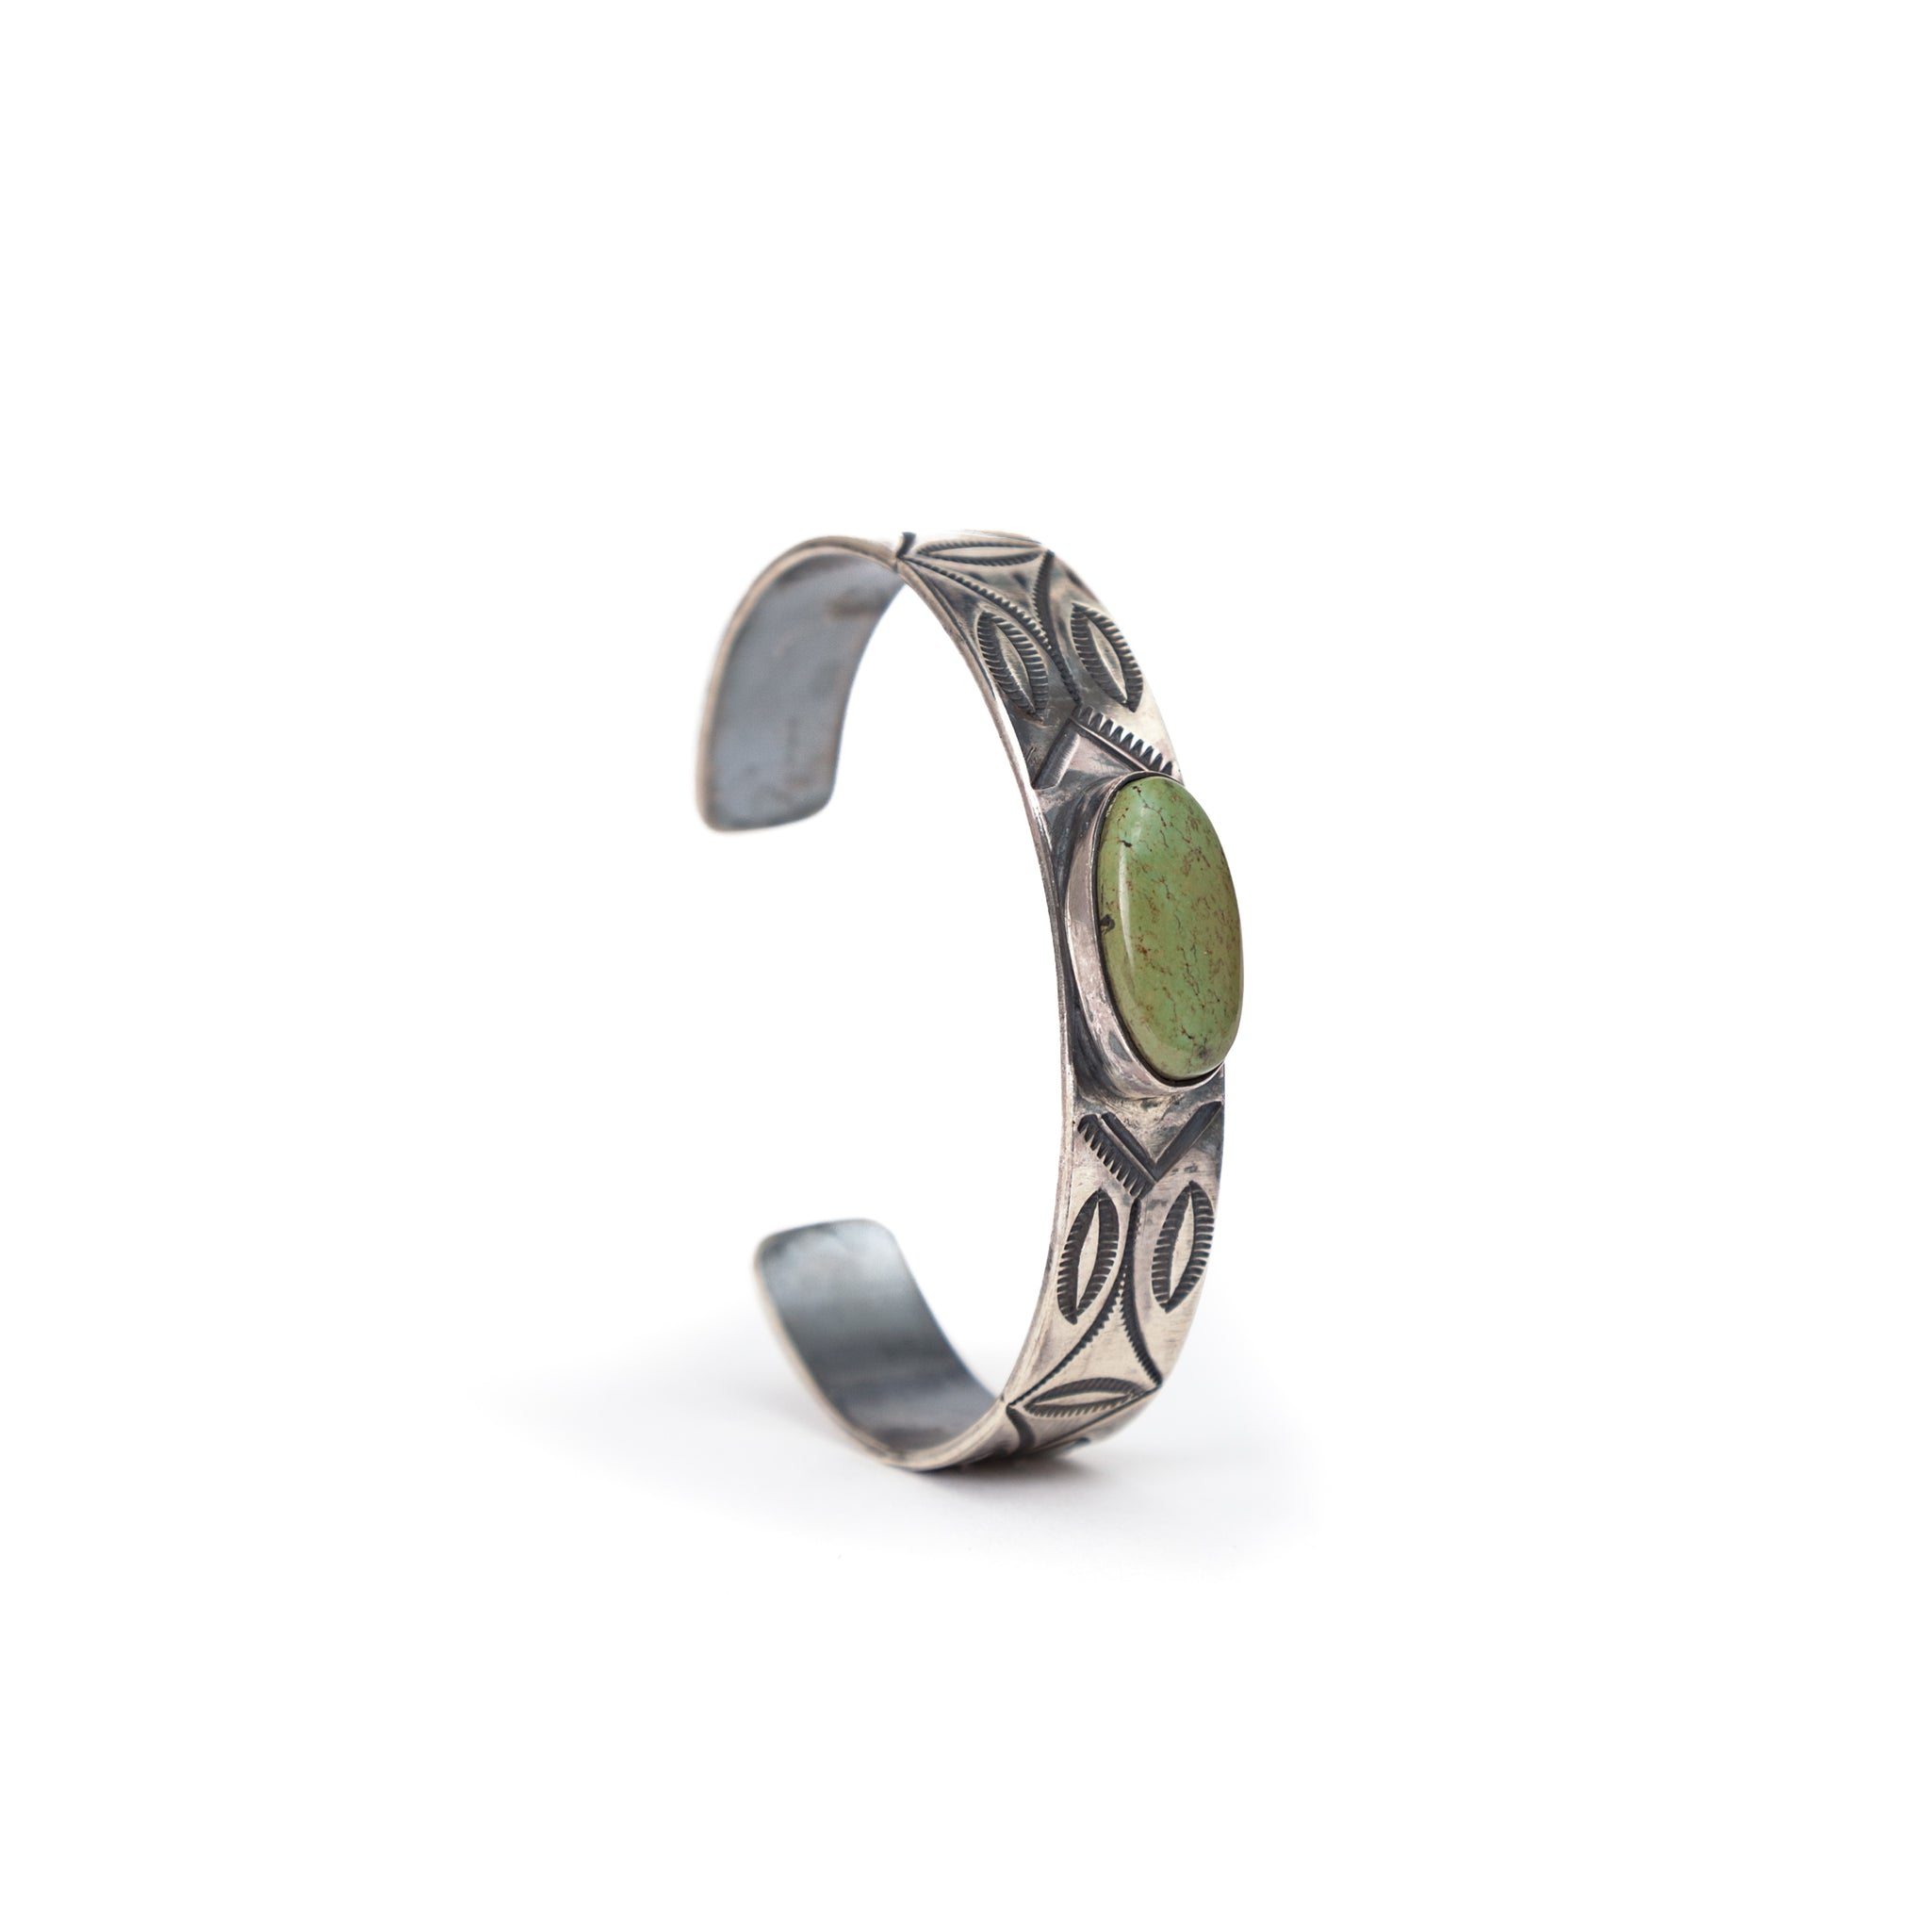 Silver Cuff & Turquoise Stone #5